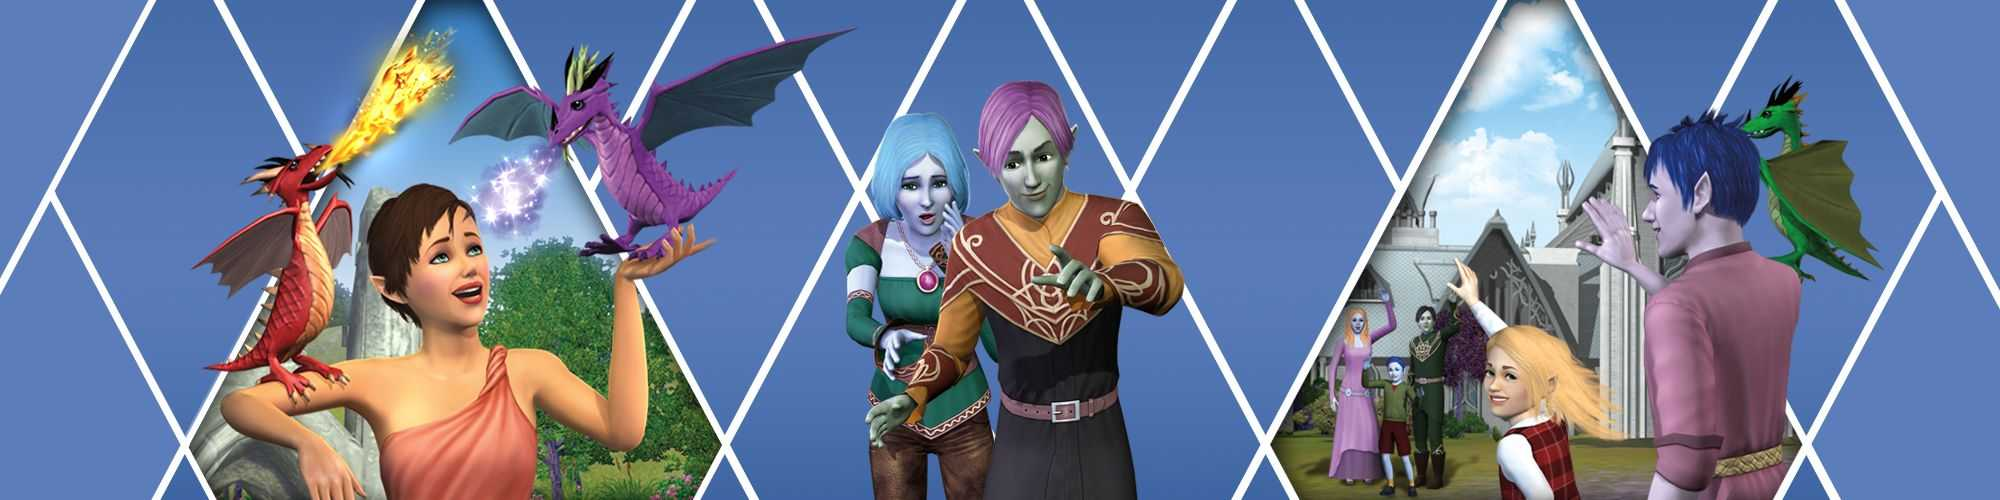 The Sims 3 Dragon Valley Gold Edition